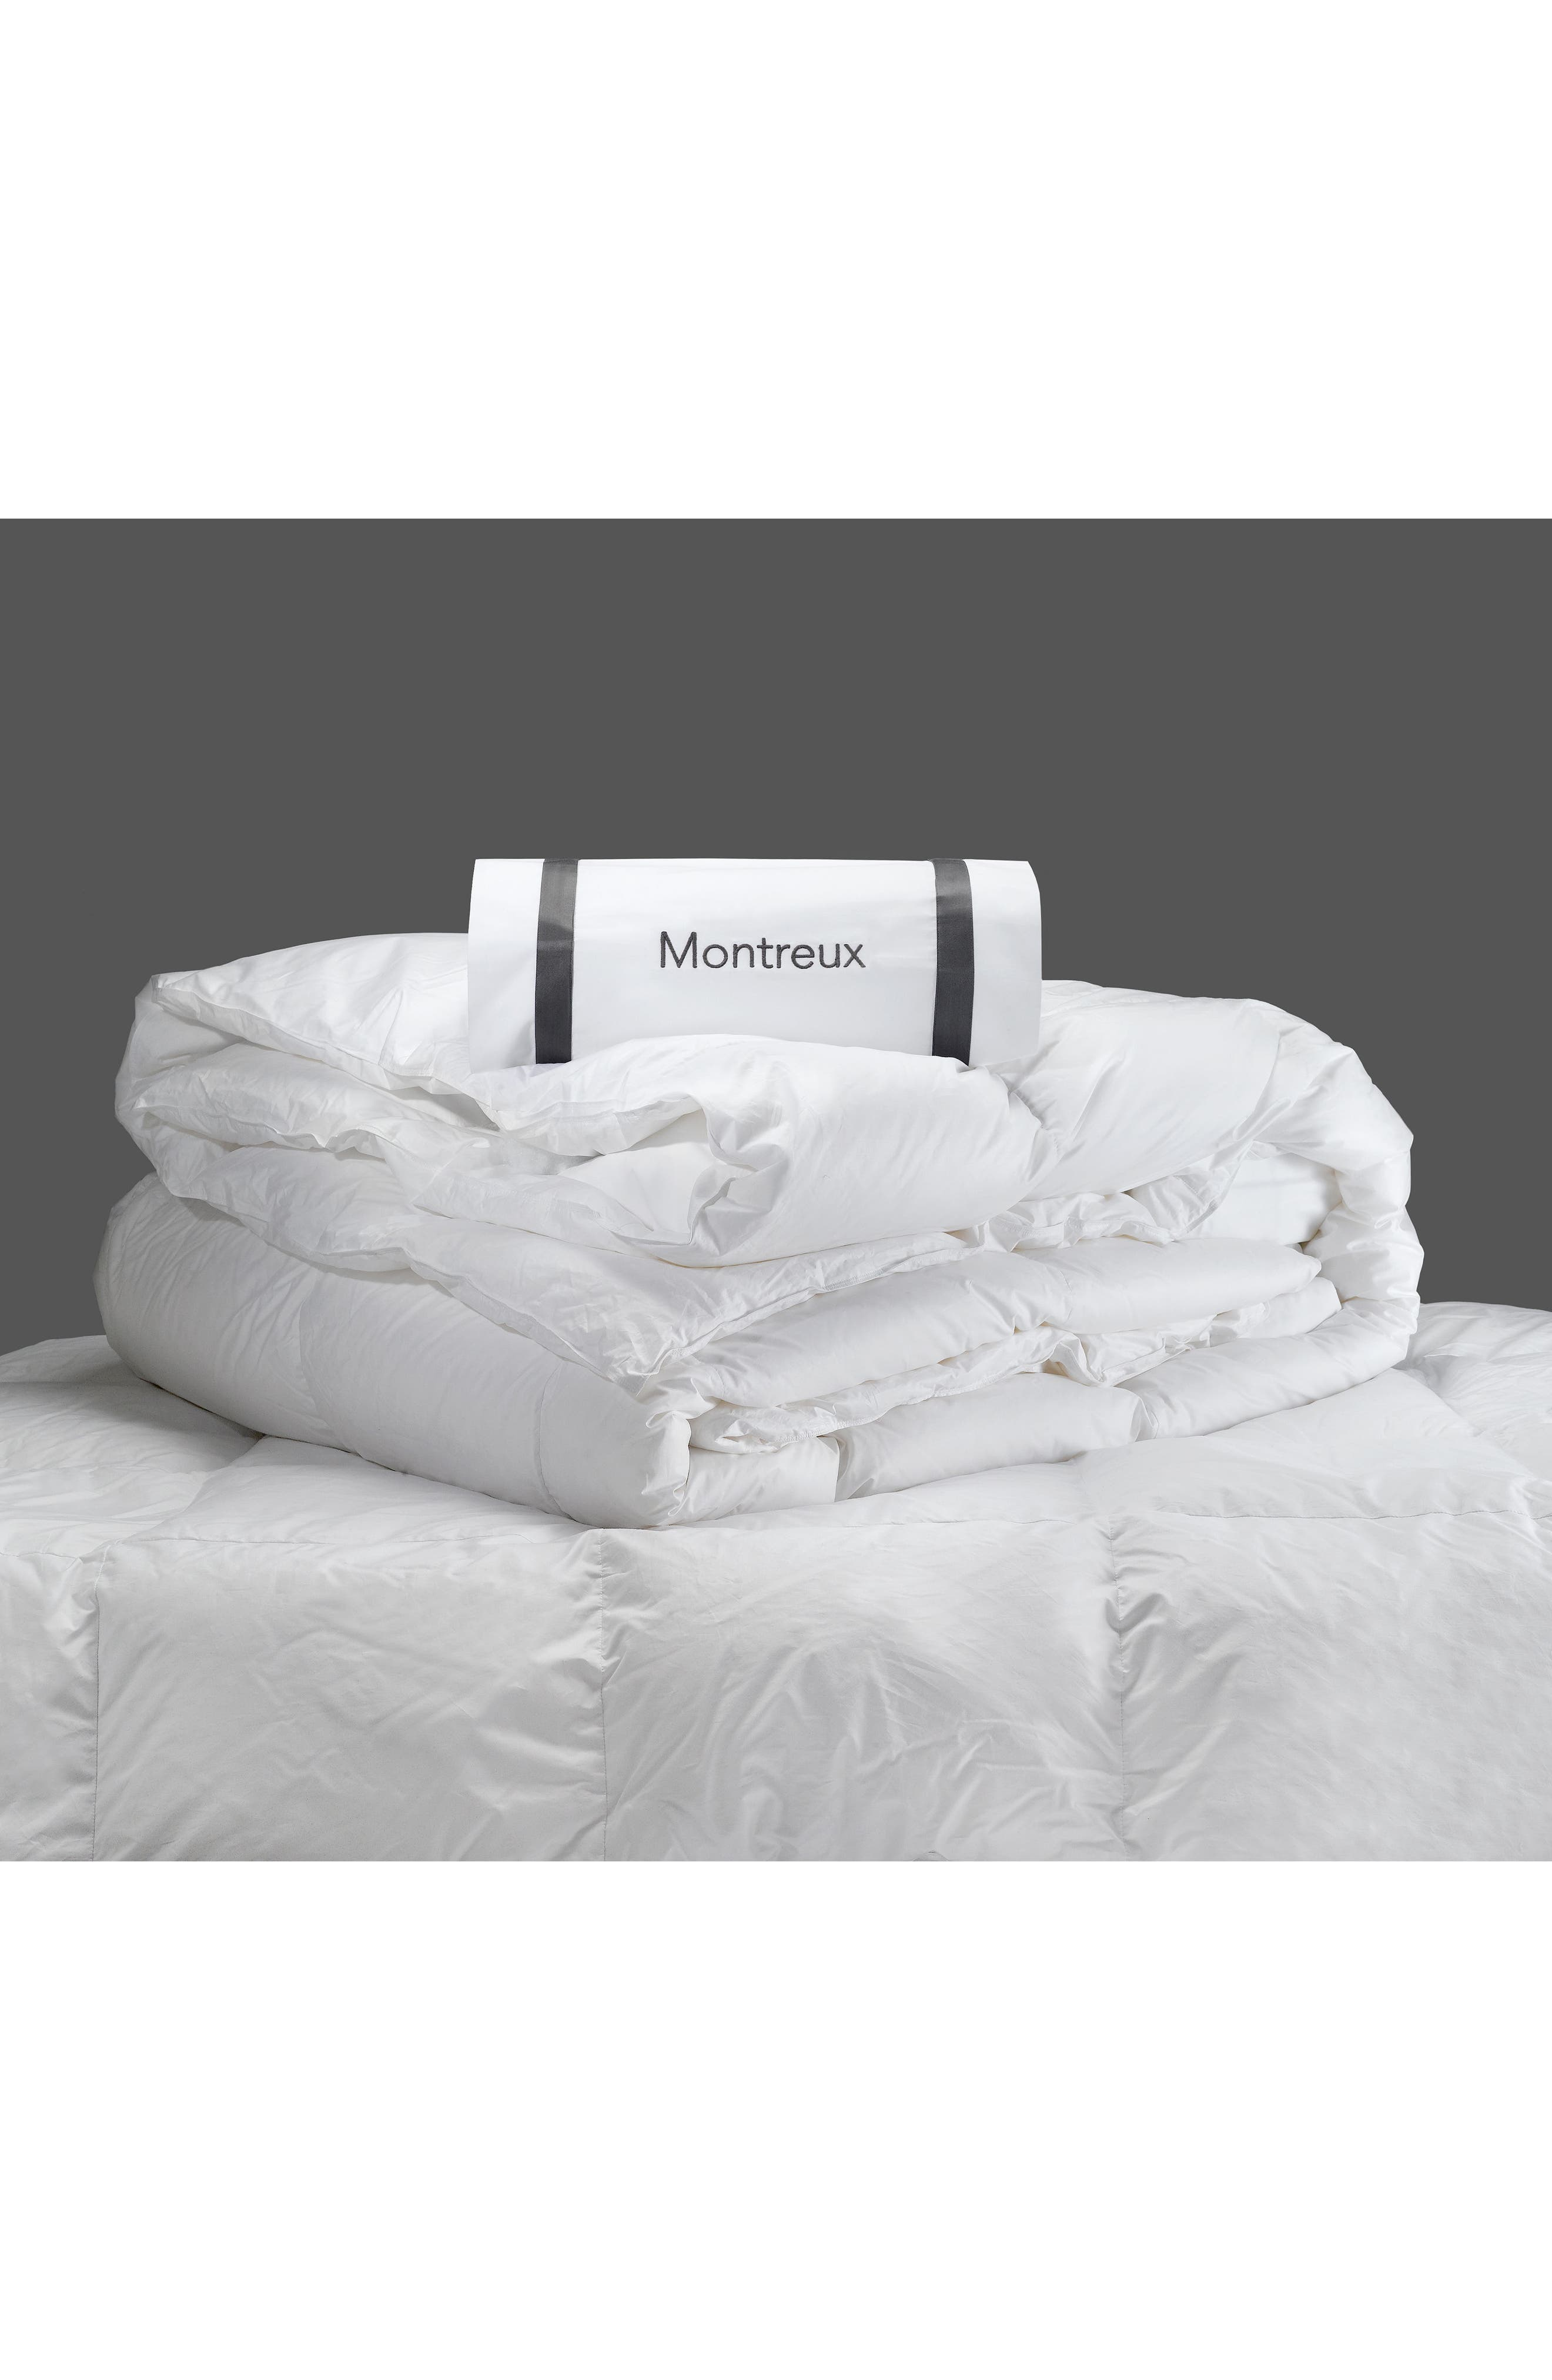 Montreux 600 Fill Power Winter Down 280 Thread Count Comforter,                             Alternate thumbnail 2, color,                             WHITE